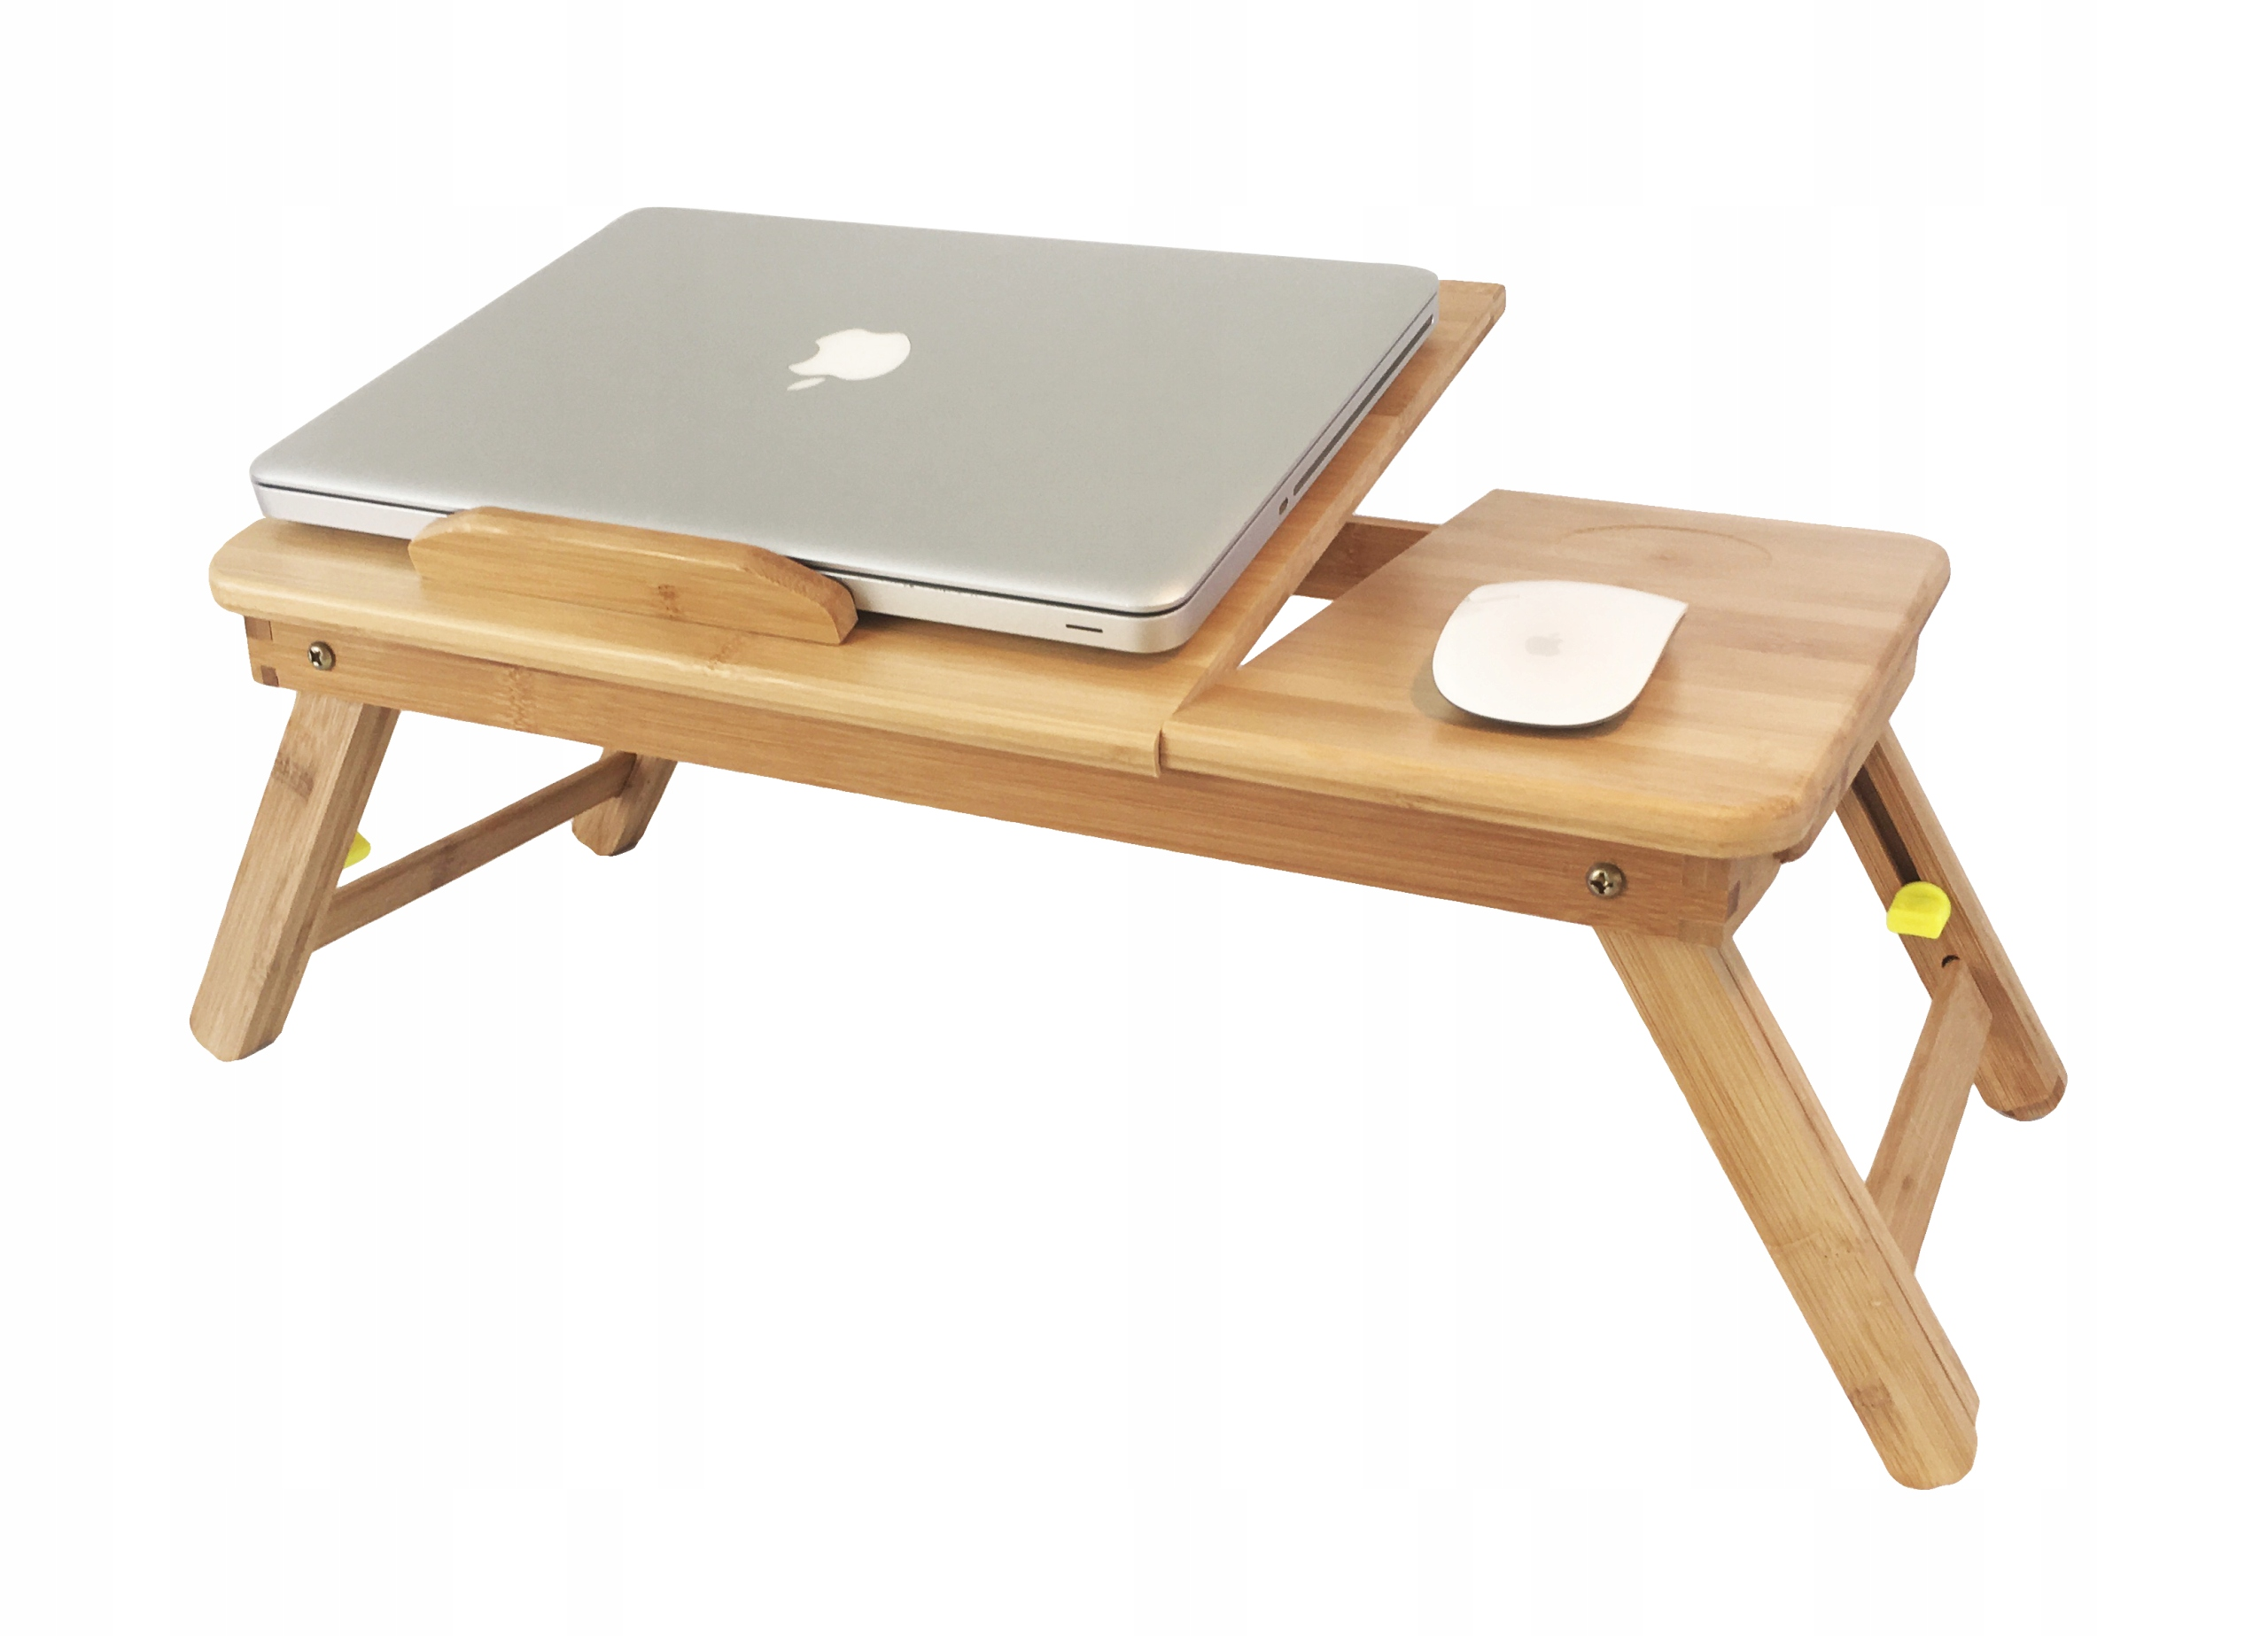 "Item COMFORTABLE BAMBOO TABLE UNDER THE LAPTOP IS 17""!!"